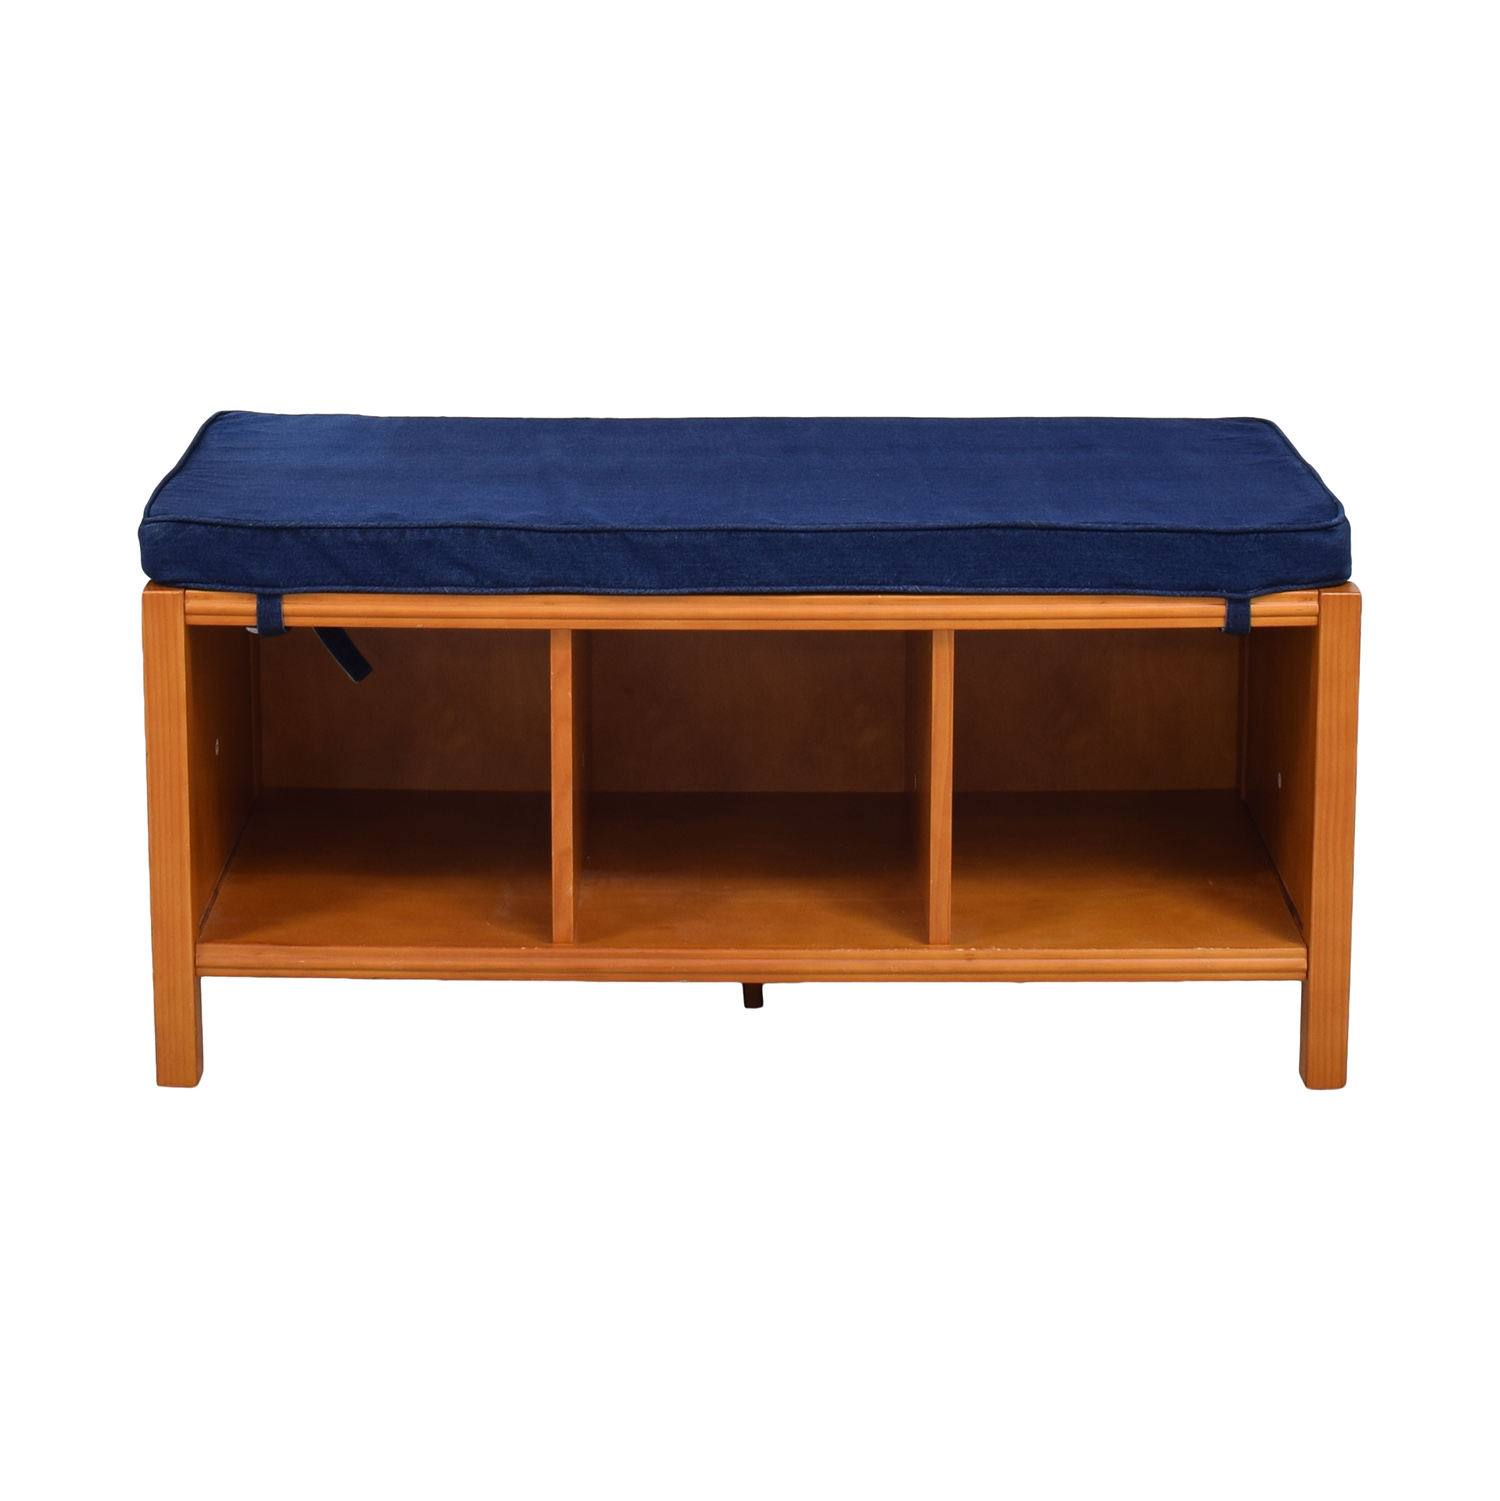 buy The Land of Nod Three Cube Bench with Cushion Land of Nod